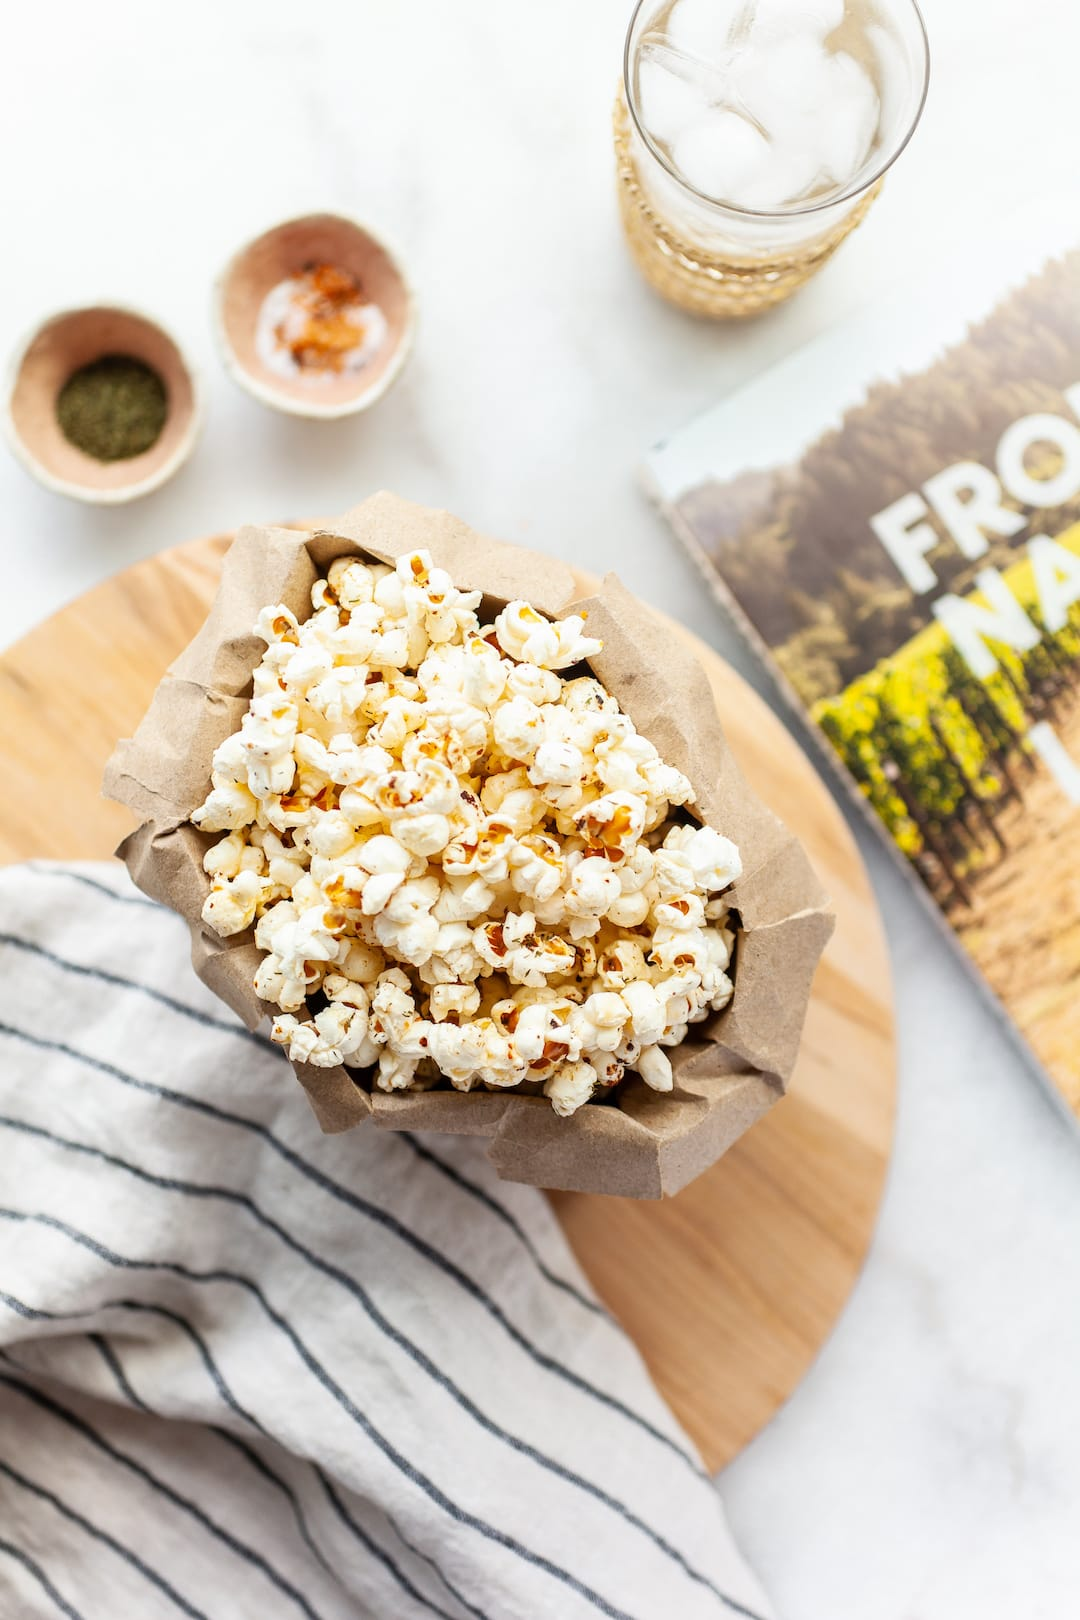 instant pot popcorn in a paper bag on a wooden board with a book beside it for styling